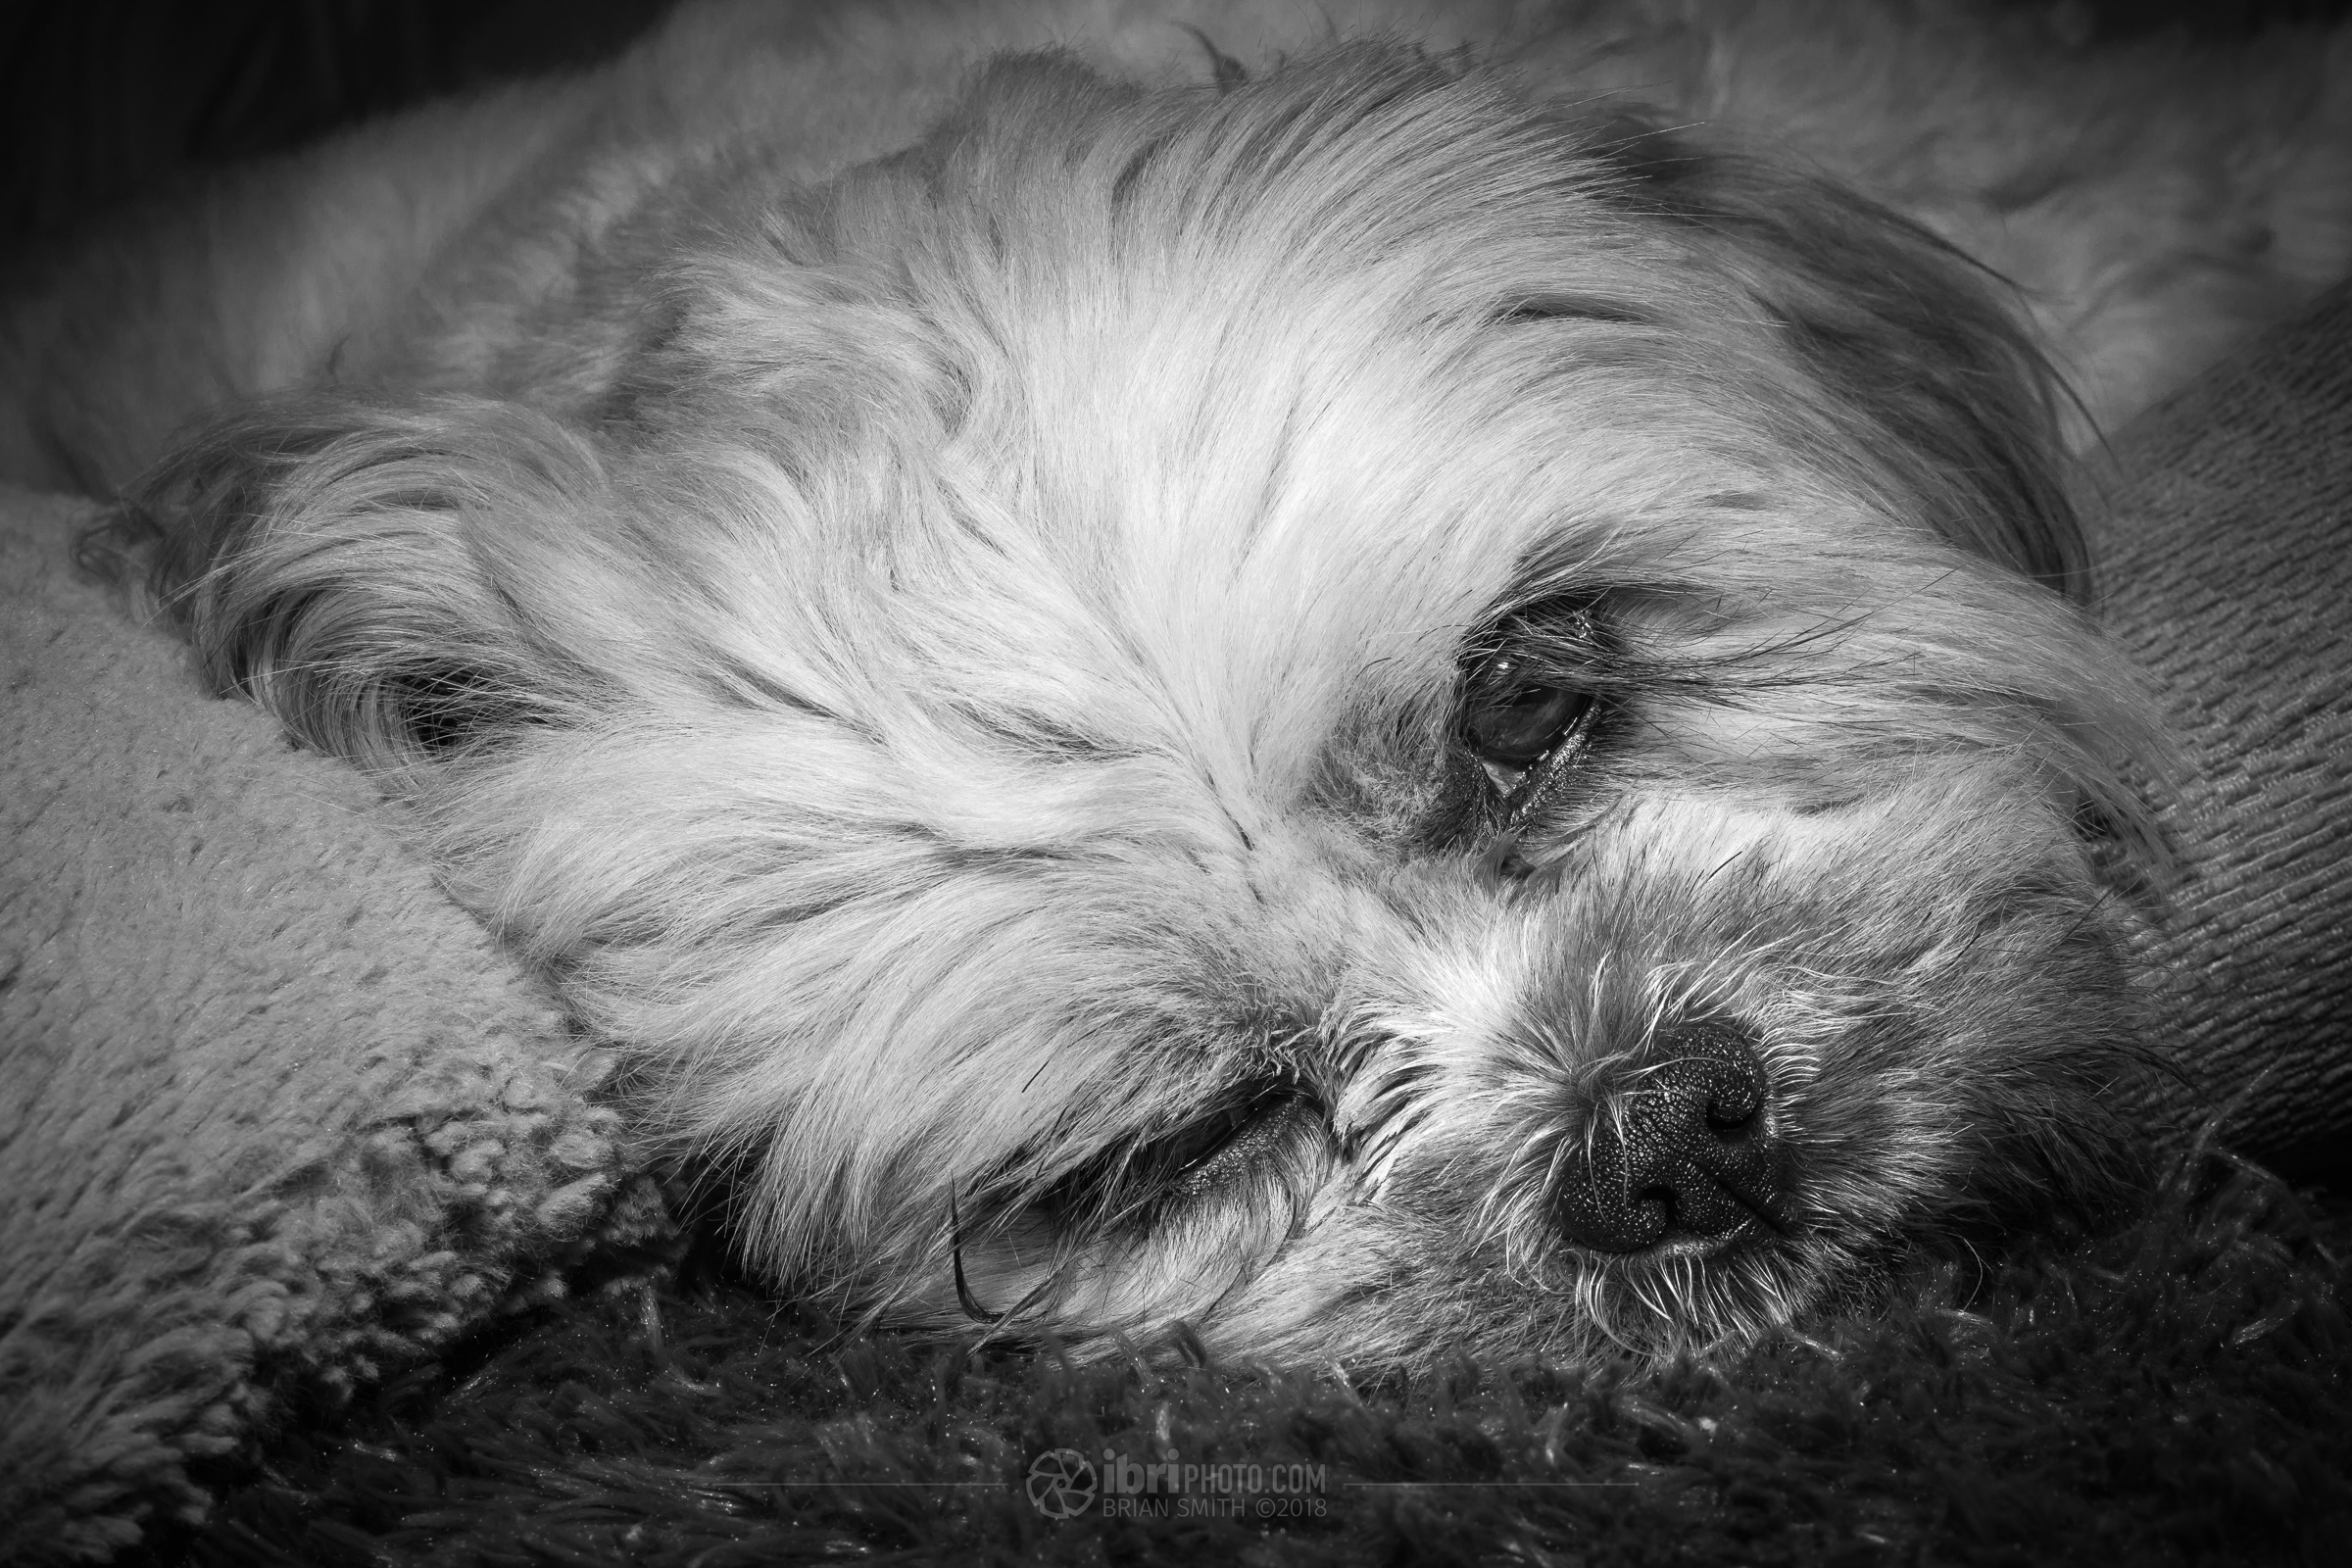 1/200 sec - f11 - ISO 100 - Flash with modifier. Edited and converted to black and white in Adobe Lightroom